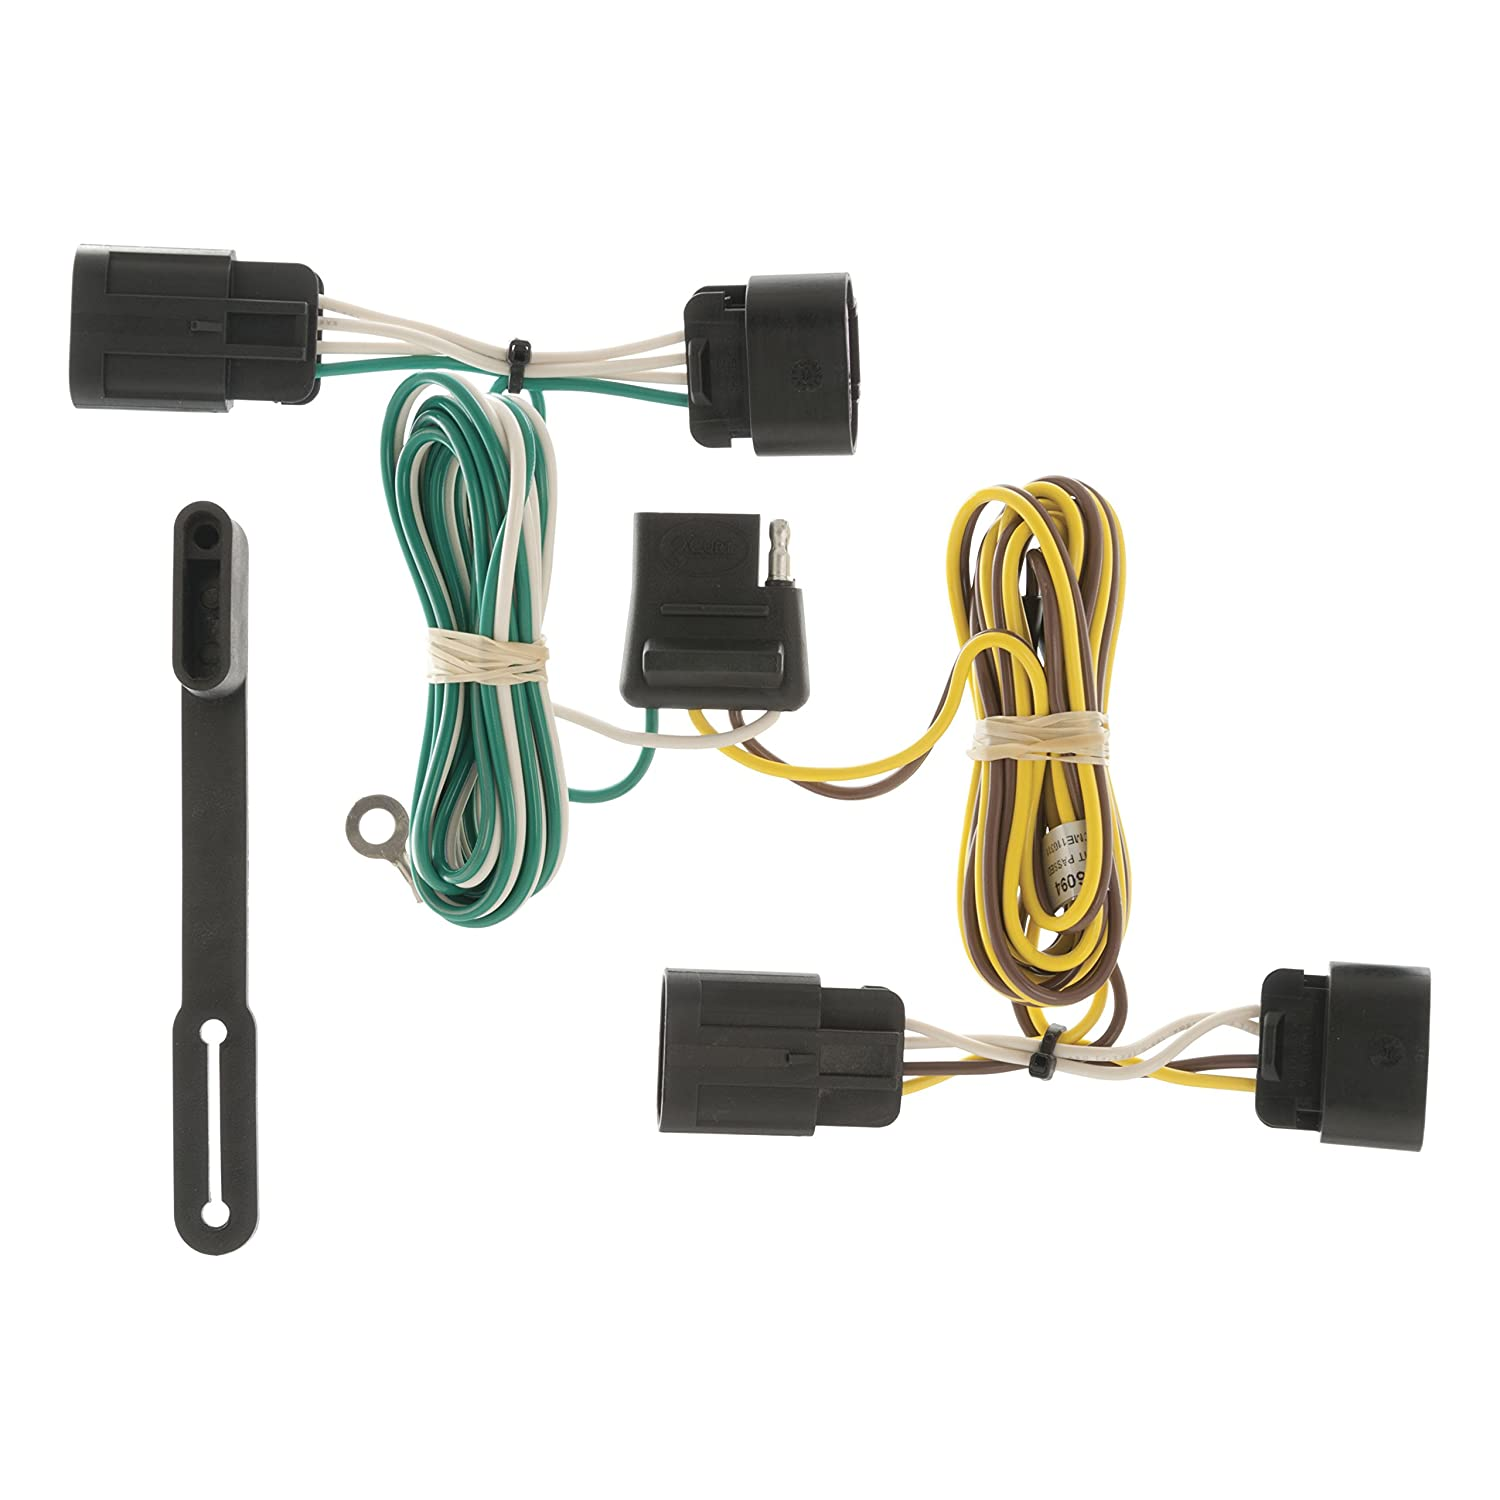 Flat Wiring Harness Chevy Truck on 2001 chevy truck shift cable, 2001 chevy truck headlights, 2001 chevy truck tailgate parts, 2001 chevy truck parts diagram,